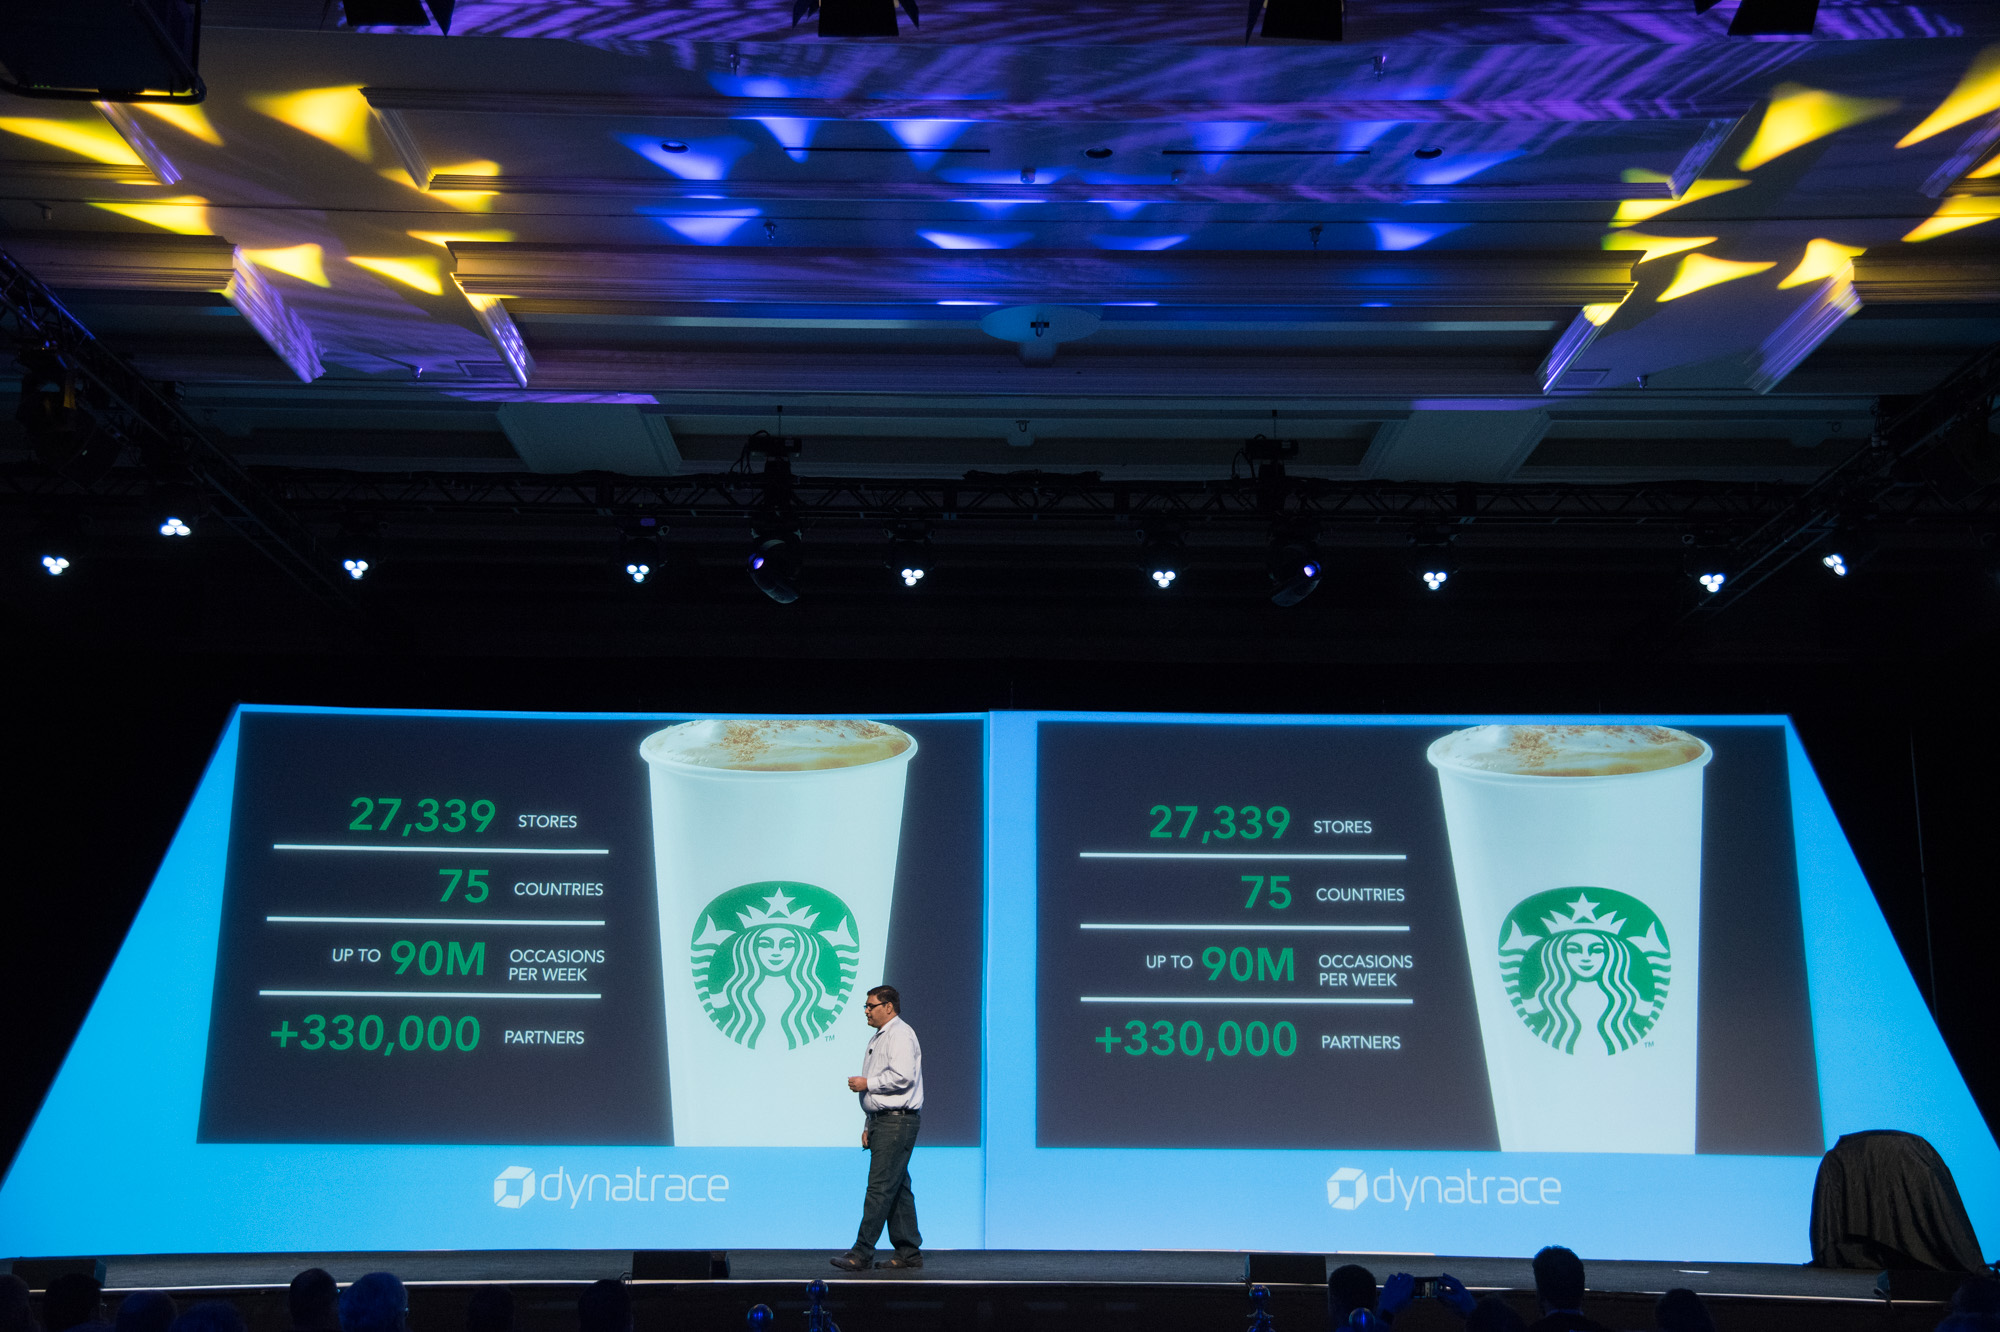 Main stage presentation by starbucks representative